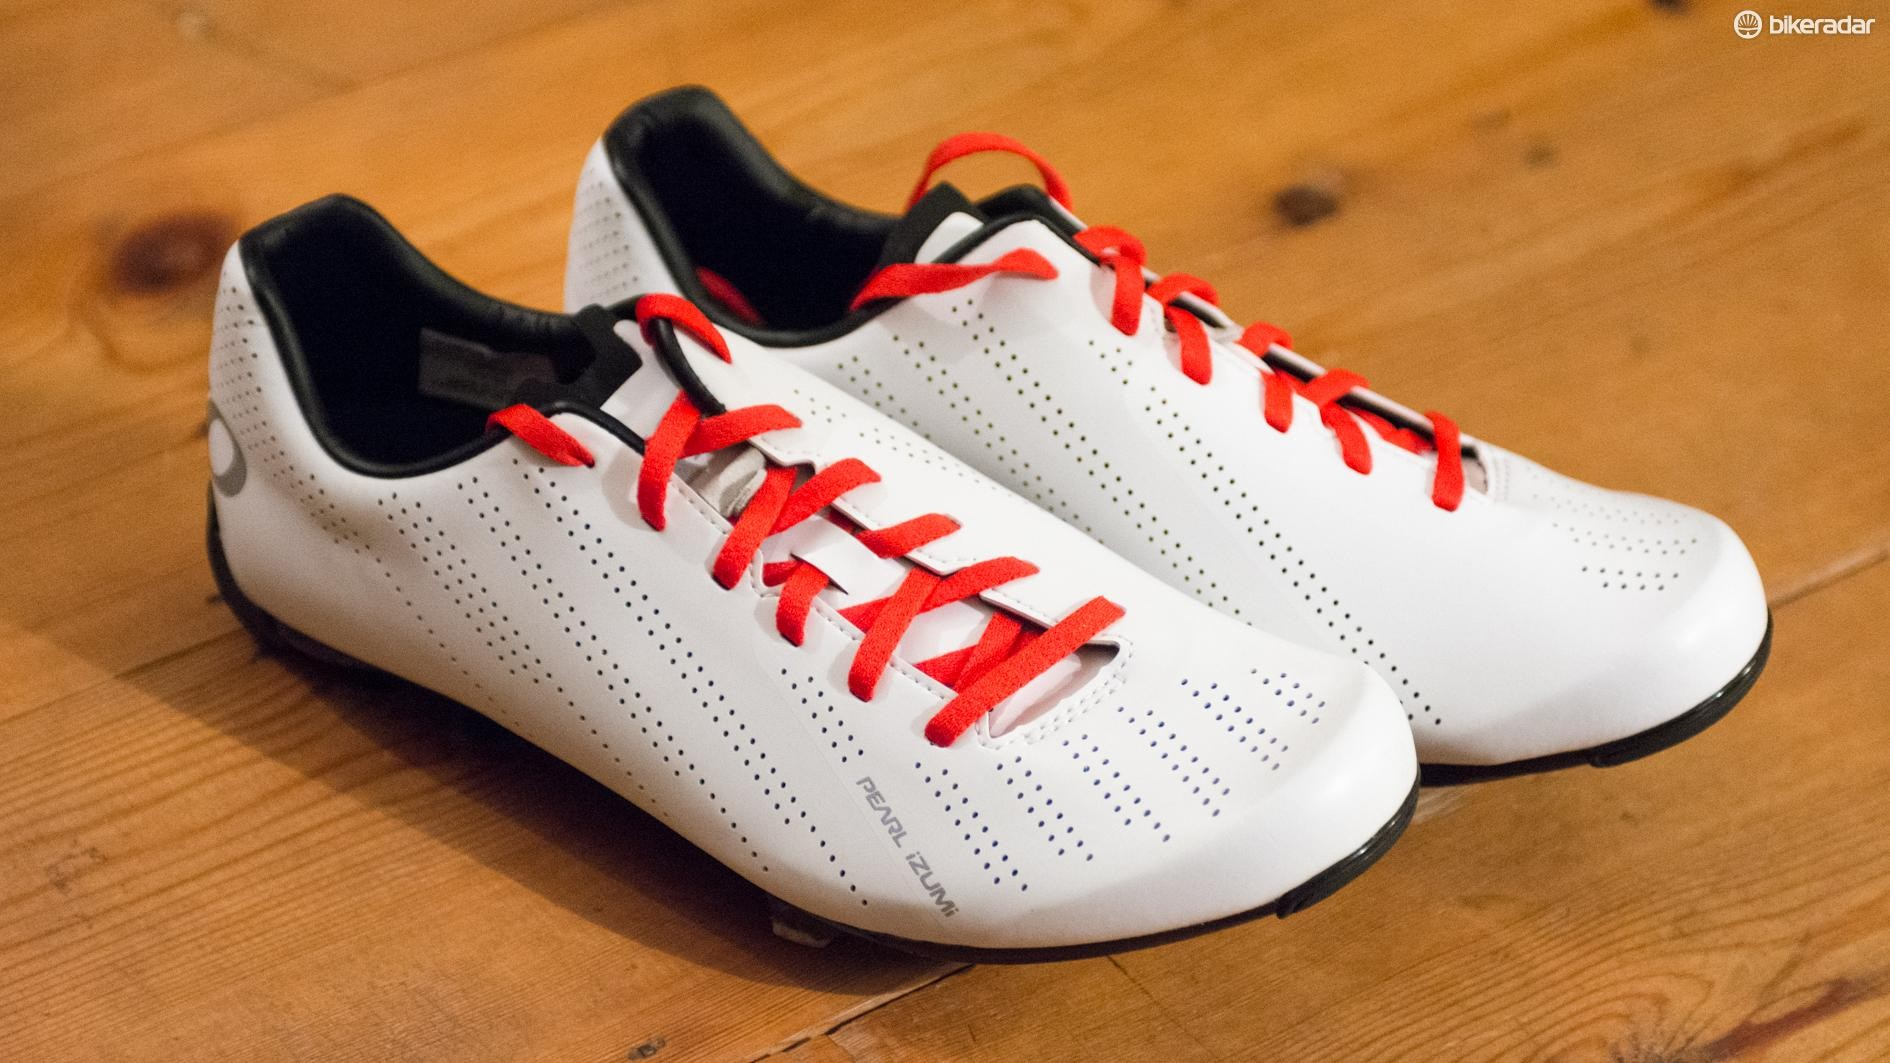 These reasonably priced kicks from Pearl Izumi look great